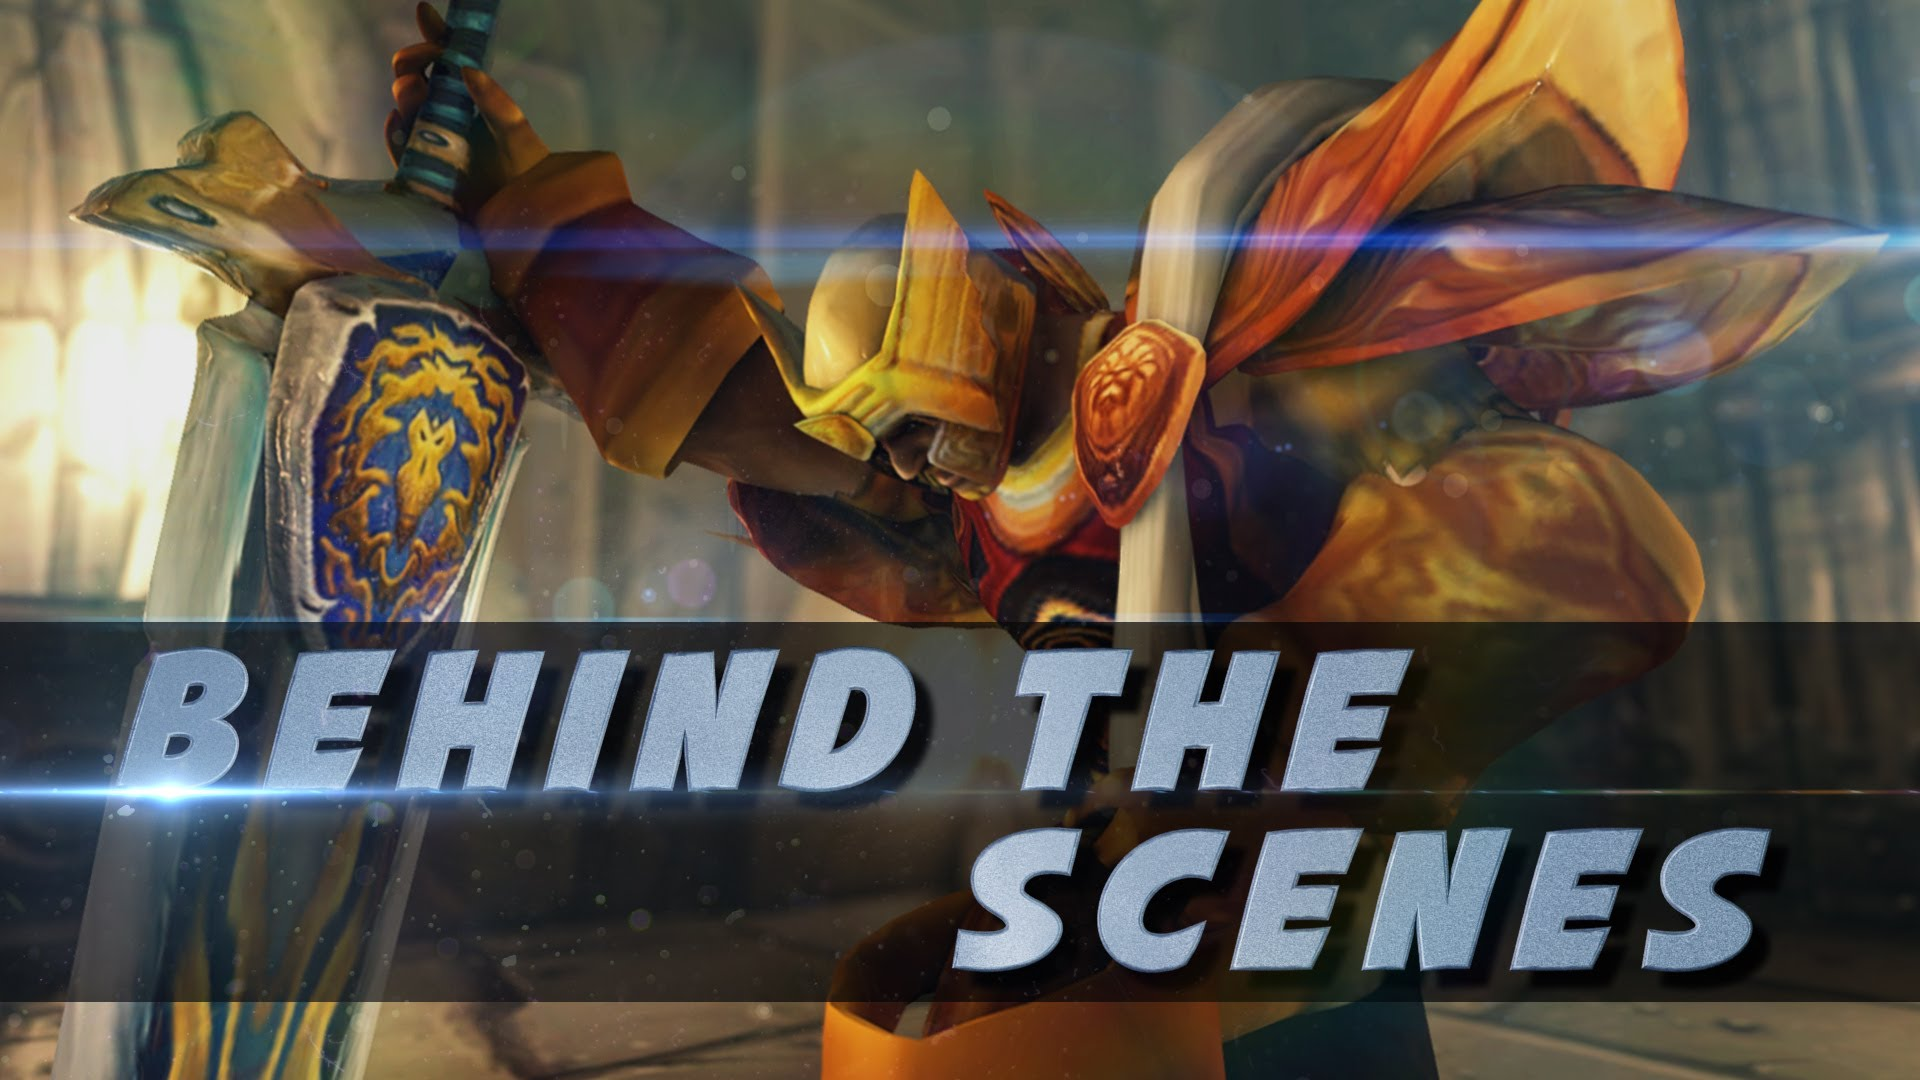 Swifty and Cobrak in Ruins of Lordaeron – Behind the Scenes by Psynaps